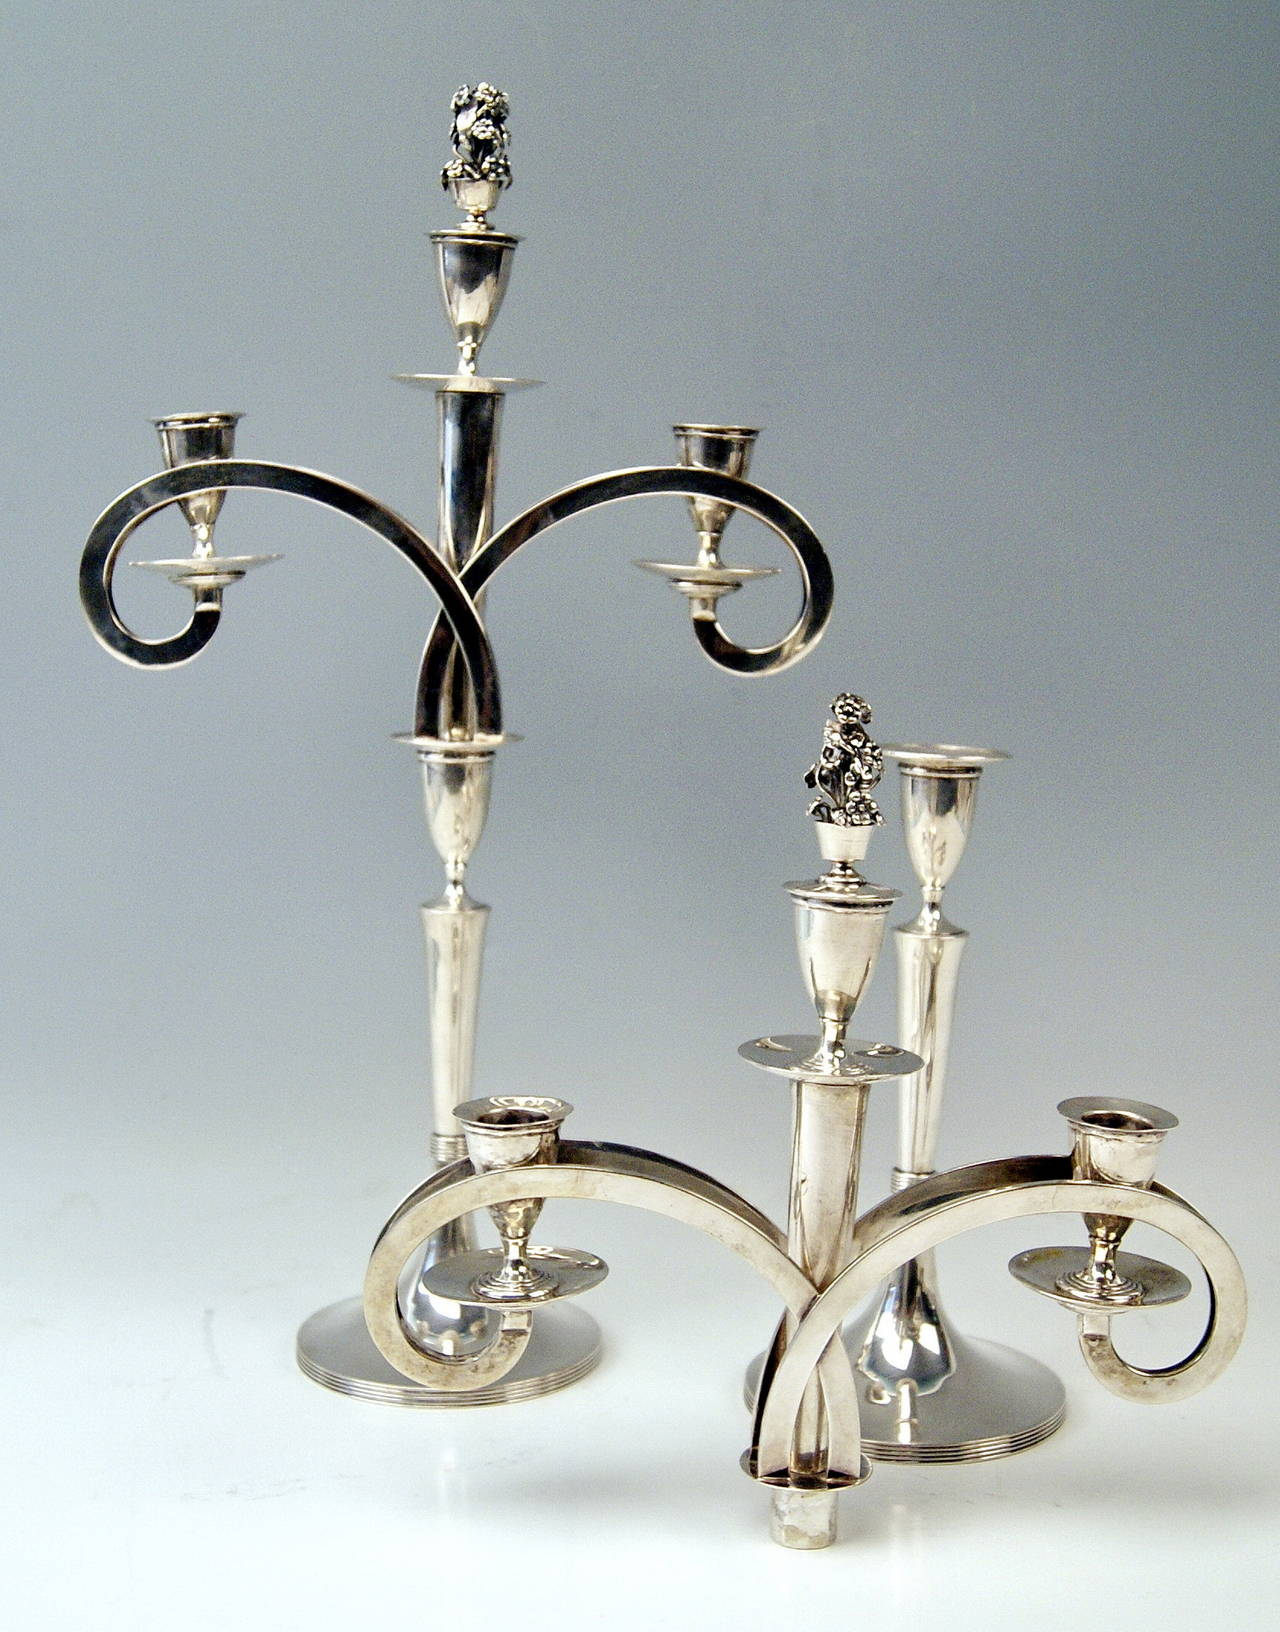 Austrian Silver 13 Lot Viennese Two Empire Candlesticks by Anton Koell Dated 1811 For Sale